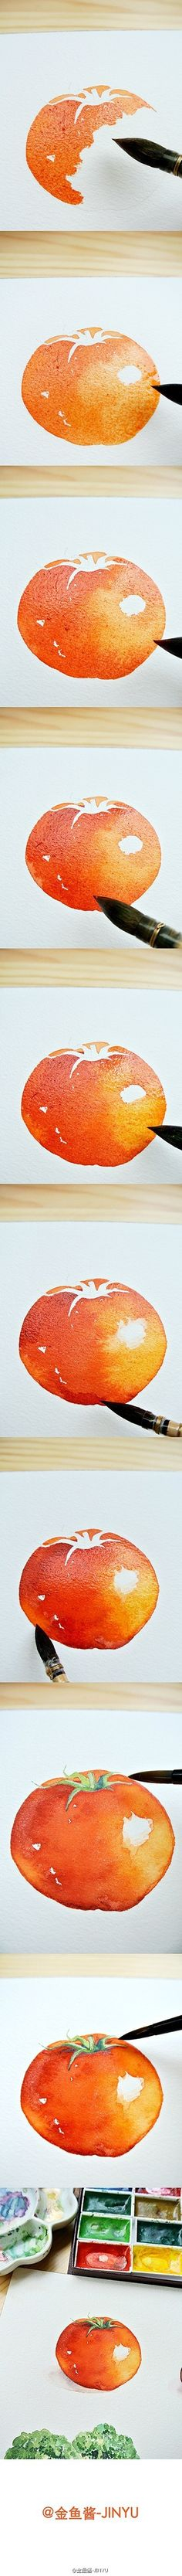 [Tutorial] tomato tomato ingredients painting sketches, book page within the four techniques, learning to share, hope is good enough. (With a long step Vice FIG Wait Loading . Watercolor Fruit, Watercolor Tips, Watercolour Tutorials, Watercolor Techniques, Watercolour Painting, Art Techniques, Watercolors, Simple Watercolor, Fruit Painting